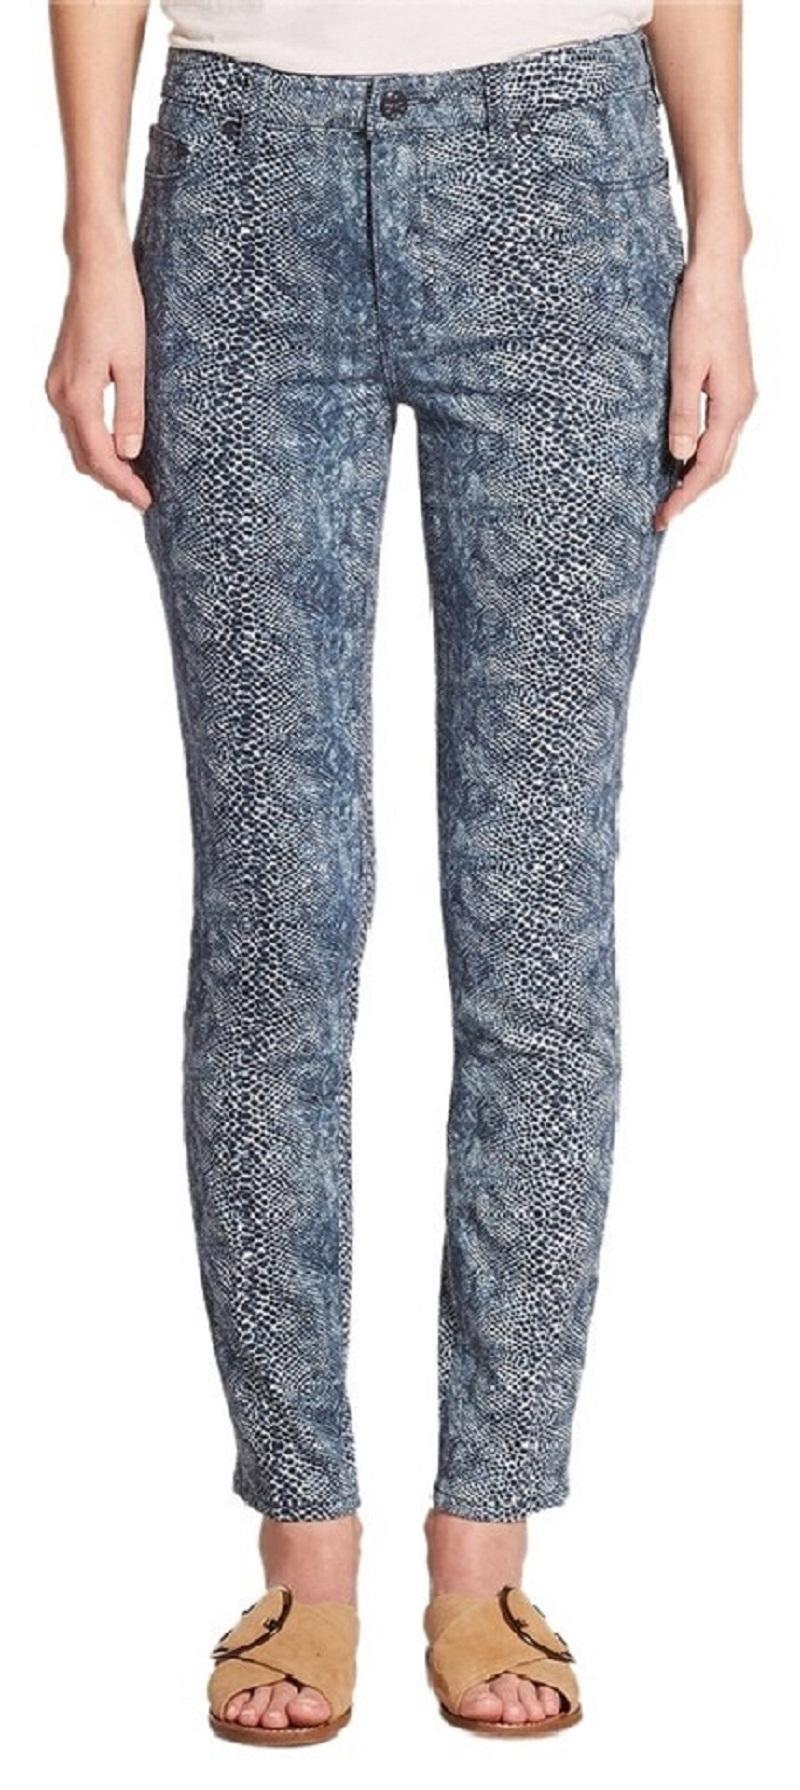 Denim Pants Spring/summer Tory Burch rux8rJ